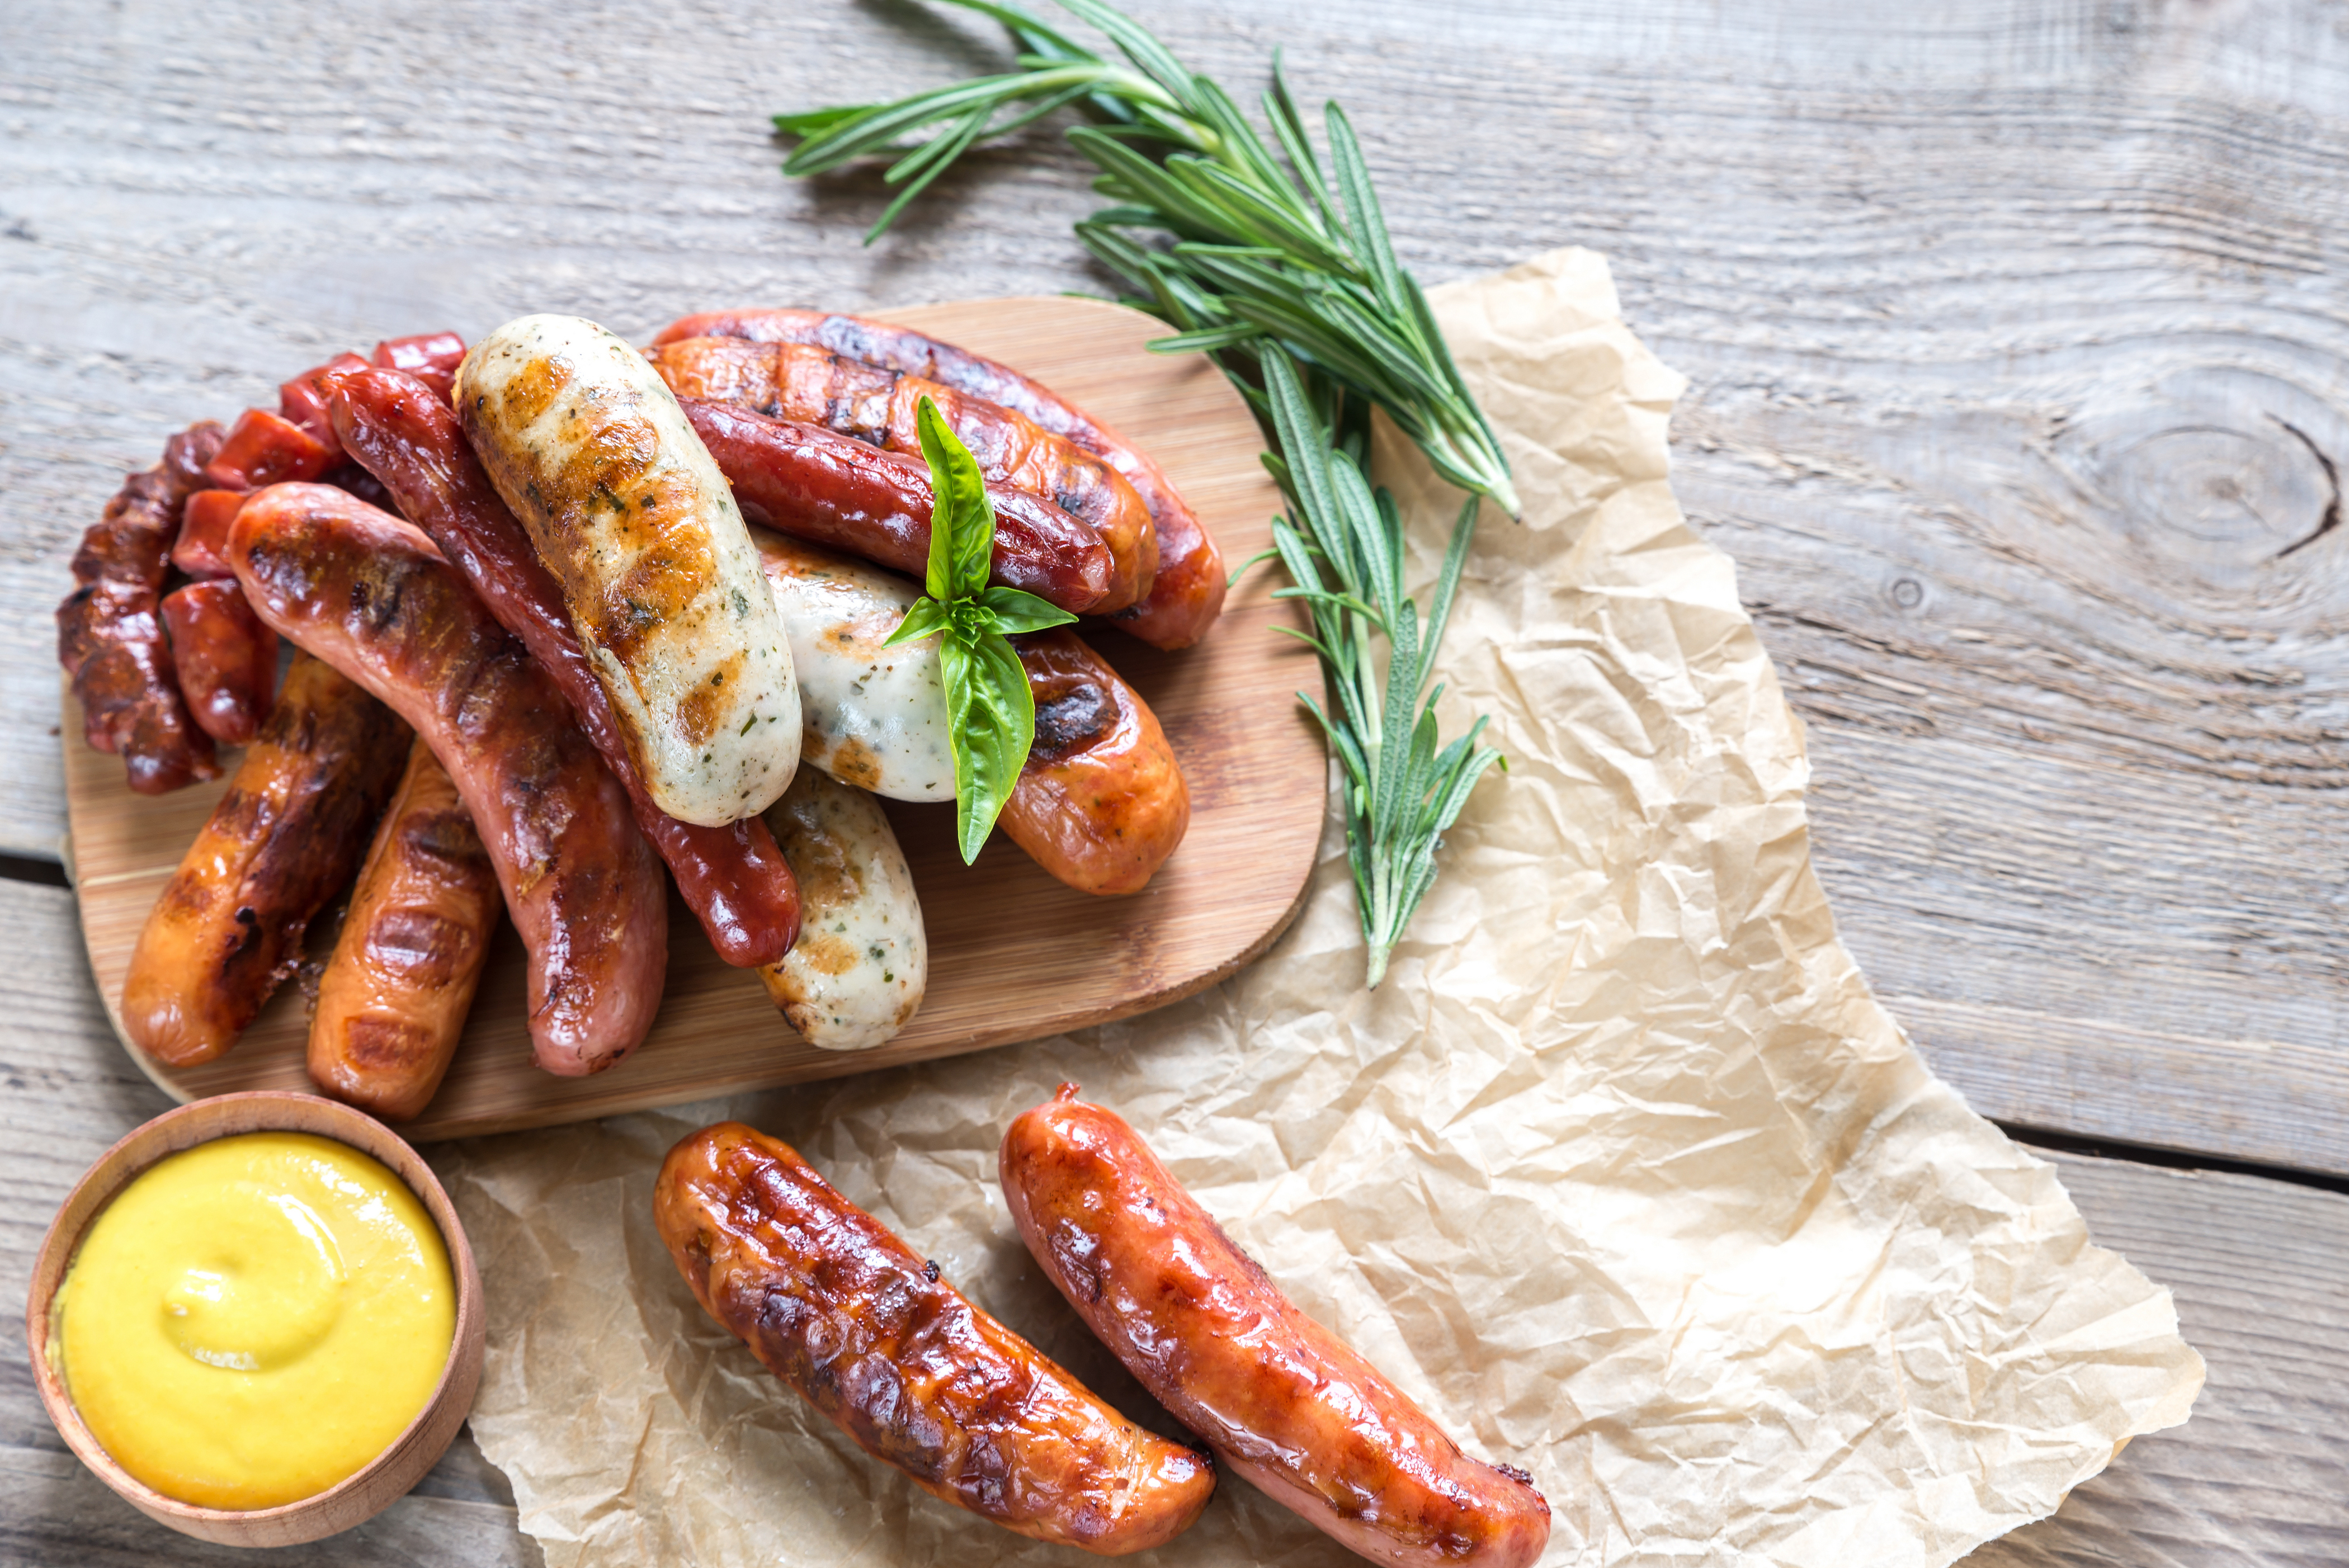 How to cook italian sausage on stove with water